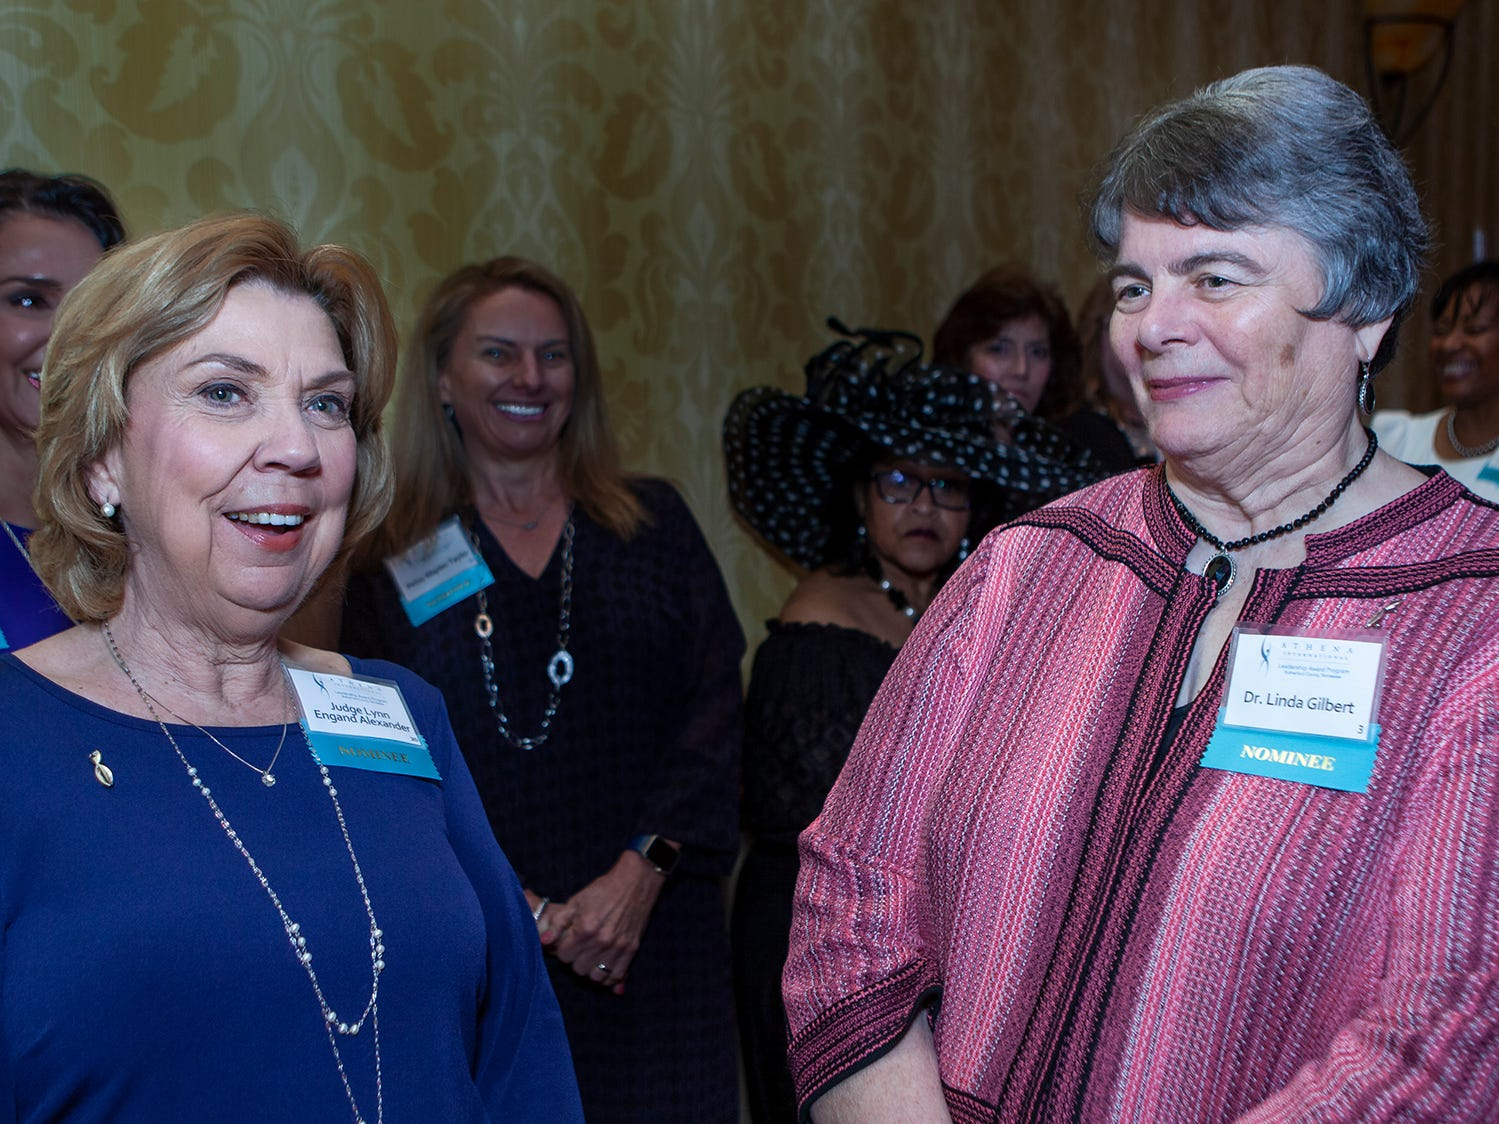 Smyrna Judge Lynn Alexander and Murfreesboro schools director Linda Gilbert wait backstage at the annual ATHENA Leadership Awards, hosted by Rutherford Cable Friday, April 12, 2019 at Embassy Suites Murfreesboro.